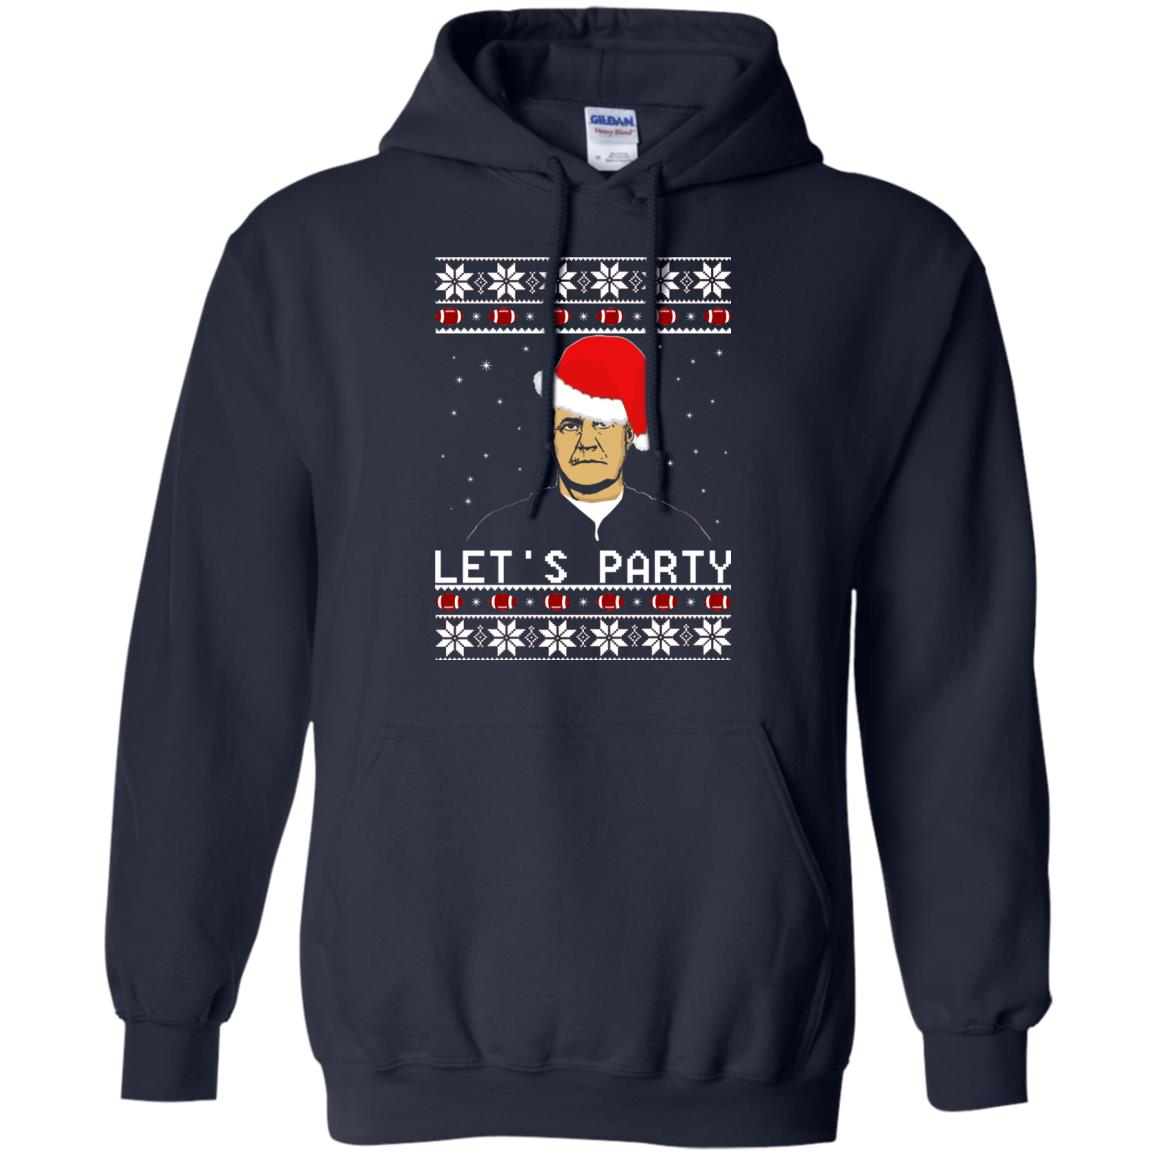 image 130 - Belichick Let's Party ugly sweater, hoodie, long sleeve